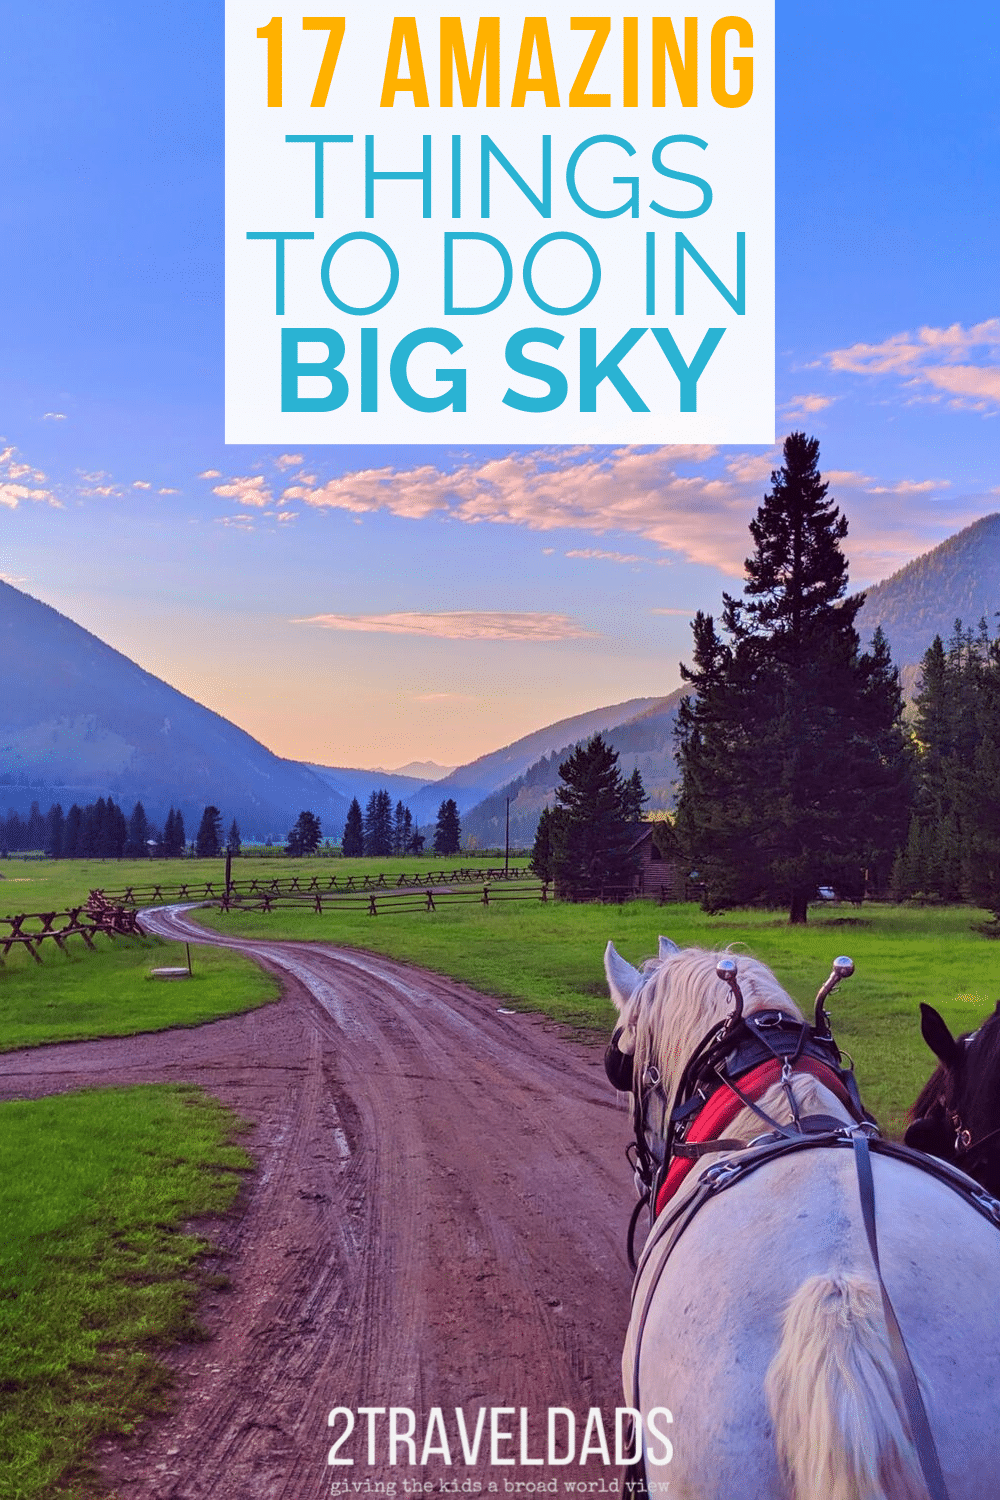 16 things to do in Big Sky, Montana from hiking to eating barbeque on the river, heading to the top of Lone Peak to so much more. And not stalking Tom Brady. #montana #bigsky #mountains #vacation